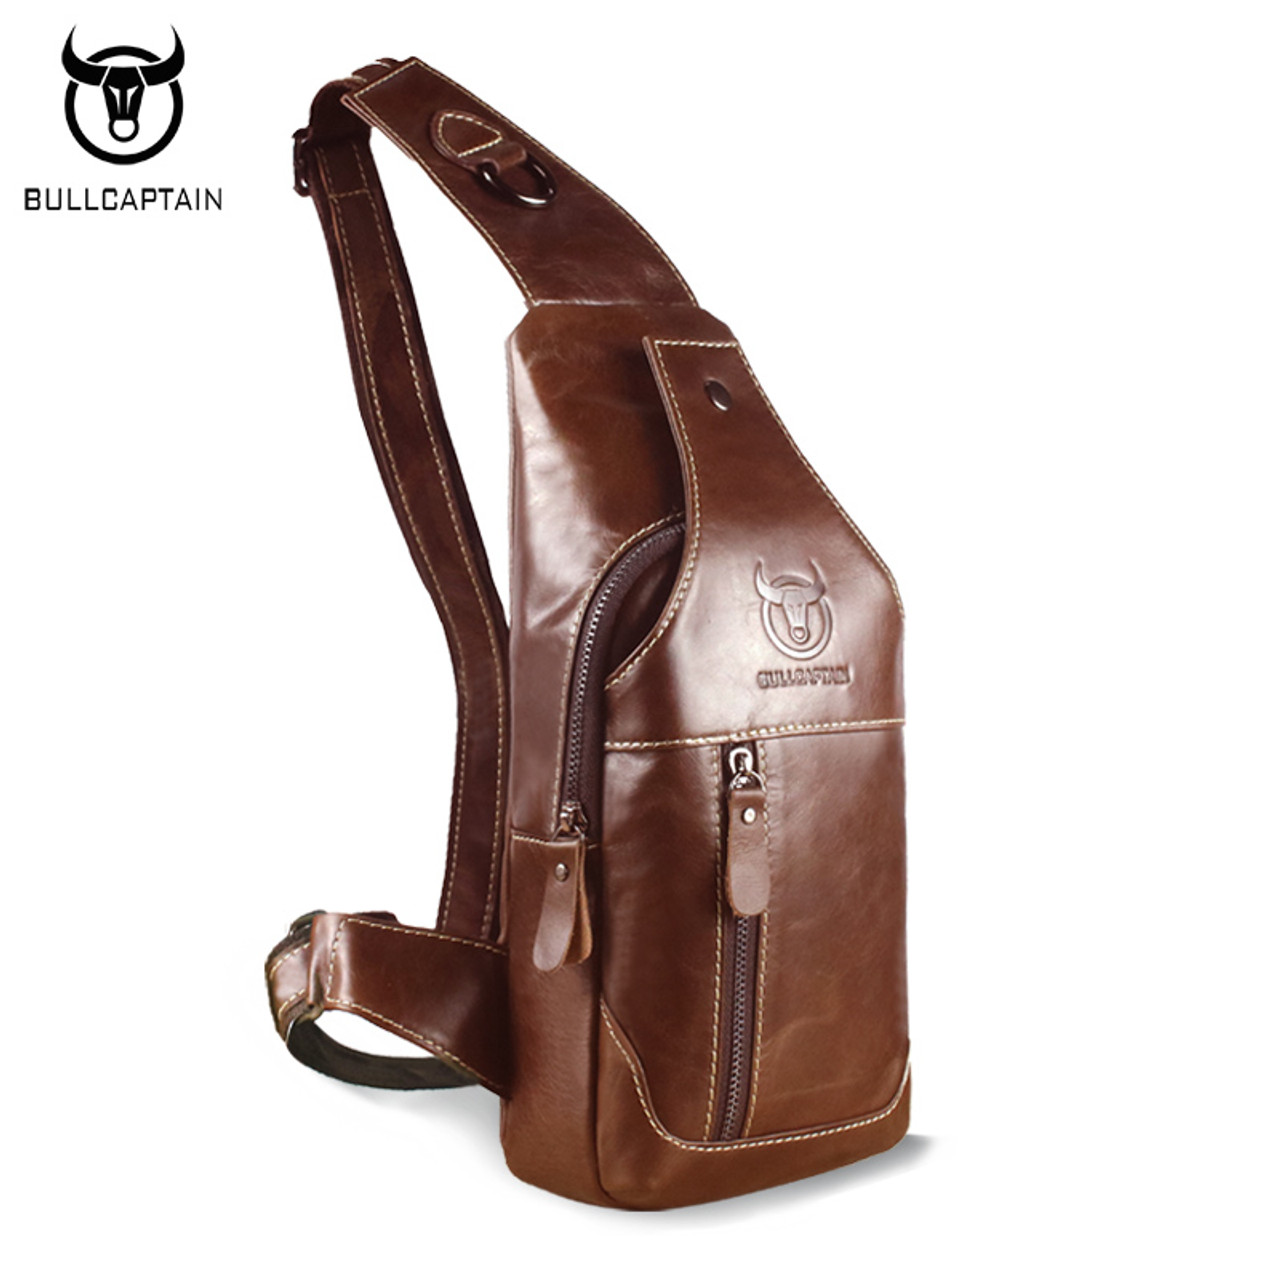 7f883b3bd6f BULL CAPTAIN 2017 Fashion Genuine Leather Crossbody Bags men casual  messenger bag Small Brand Designer Male Shoulder Bag 019 - OnshopDeals.Com